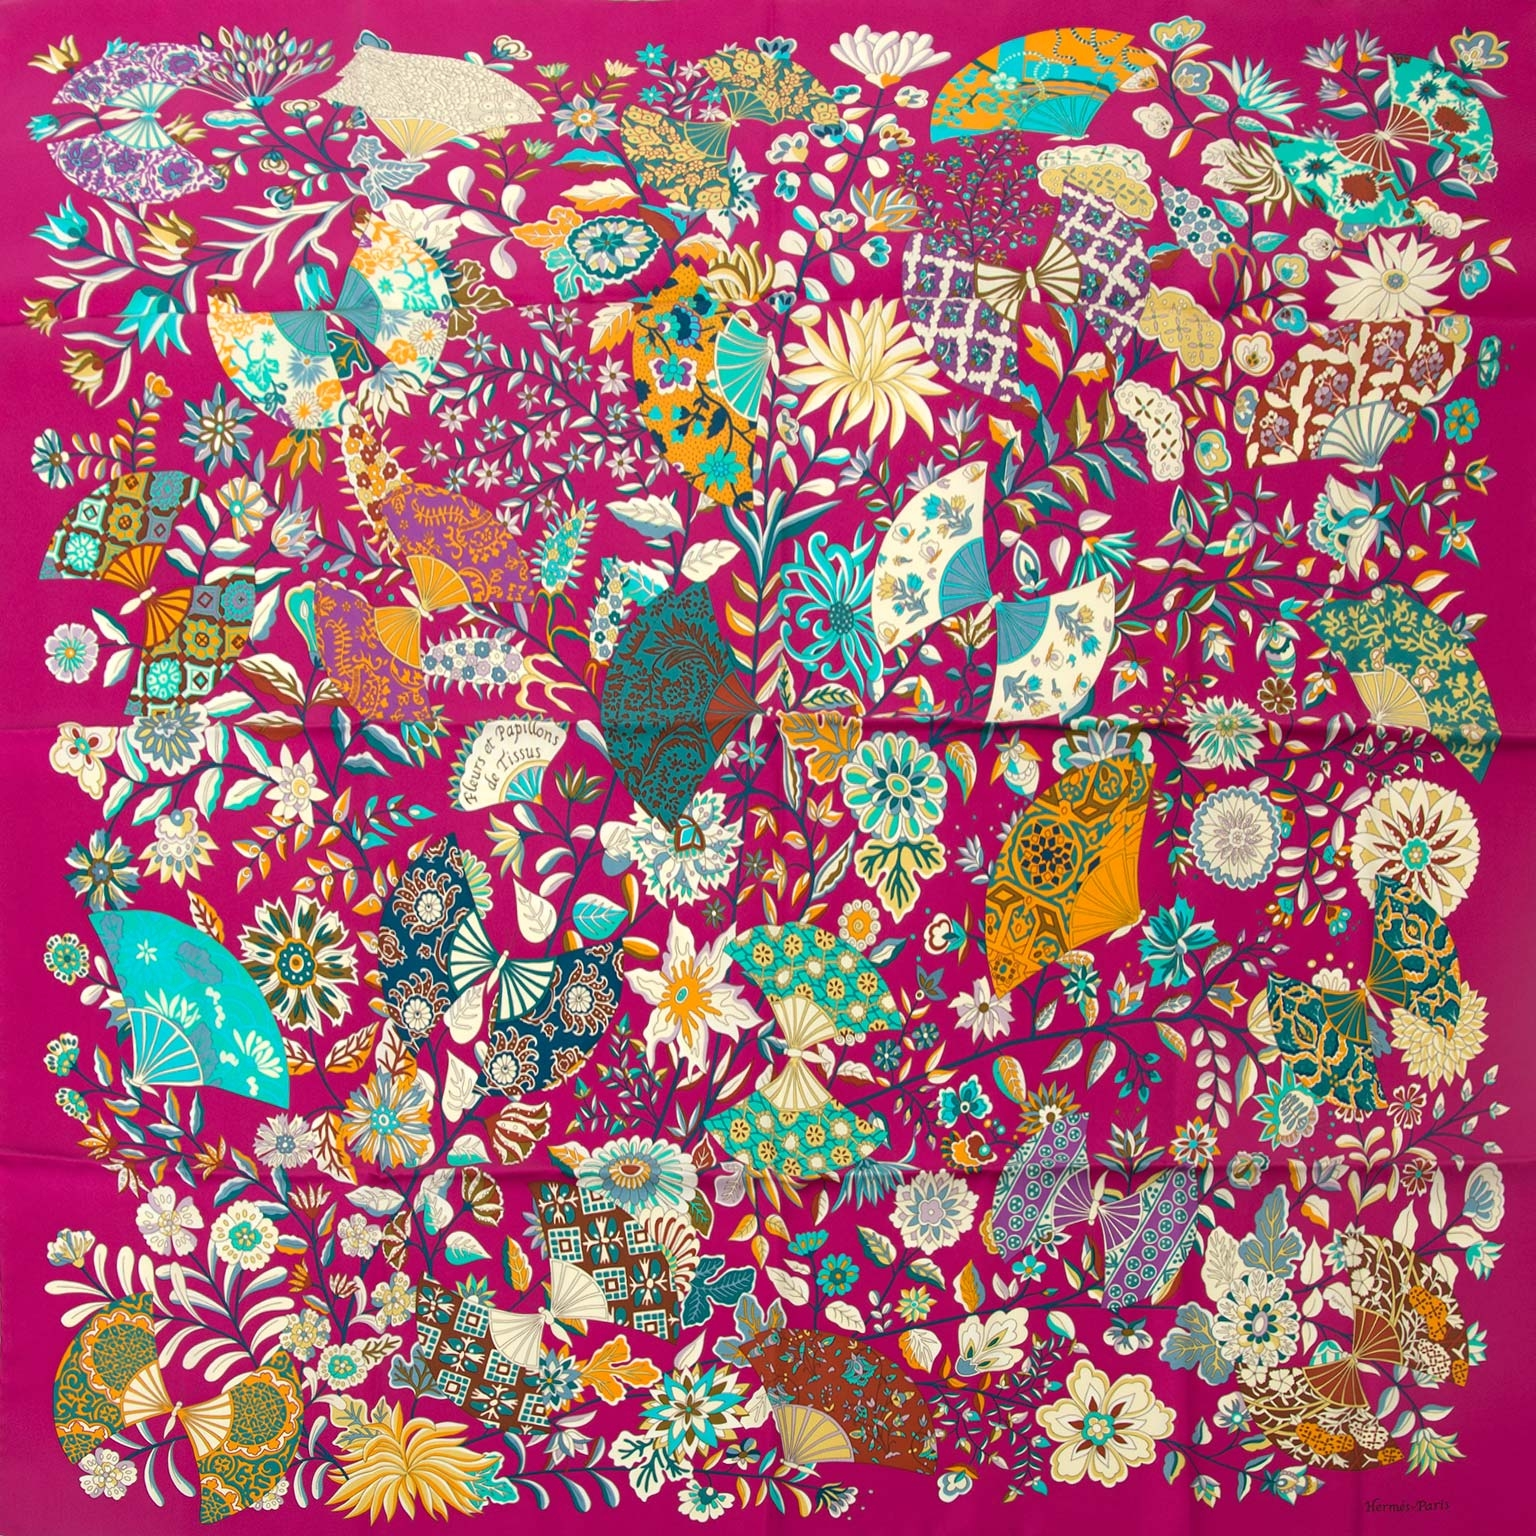 hermes carre fleurs et papillons de tissus scarf now for sale at labellov vintage fashion webshop belgium